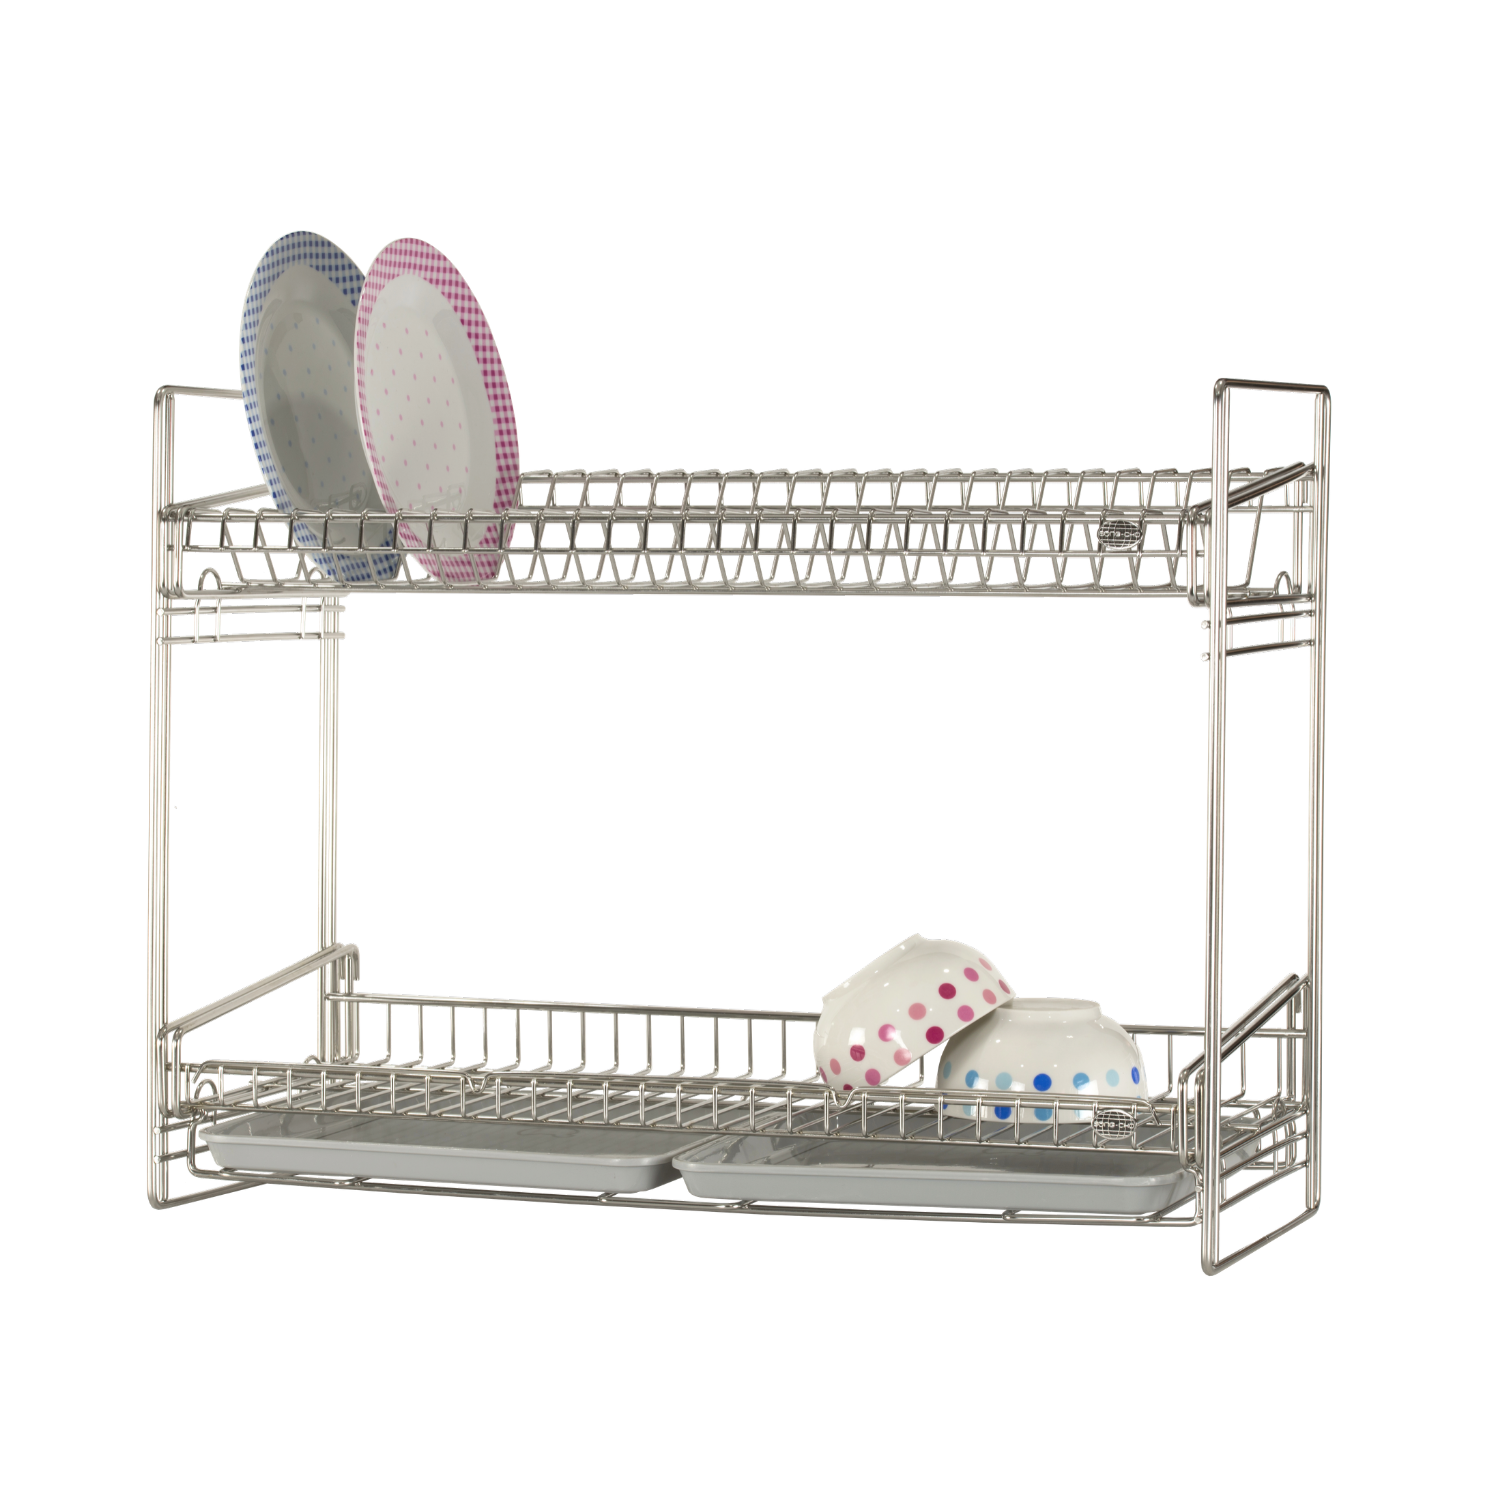 Song Cho 18 8 Stainless Steel 2 Tier Dish Rack Table Top 15331a1bs Kd02mt Lazada Singapore